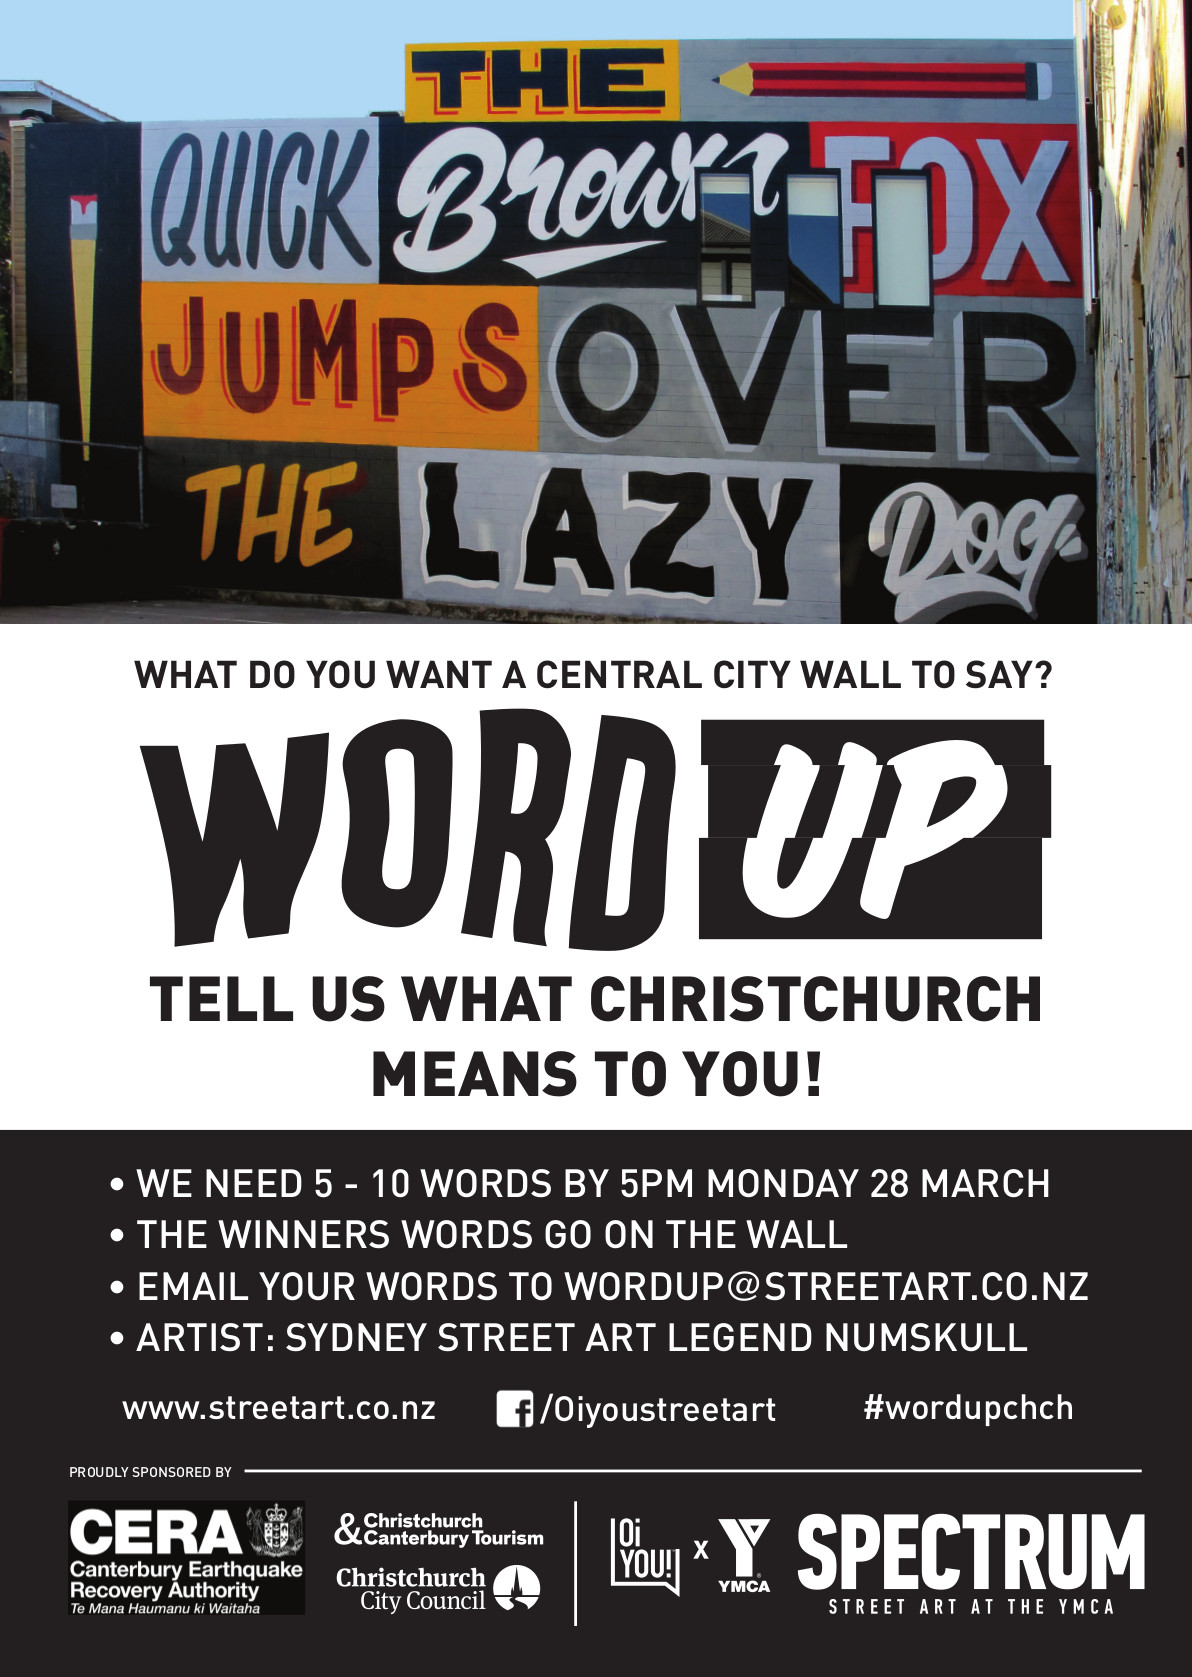 Call out for words, Word Up 2016 Christchurch